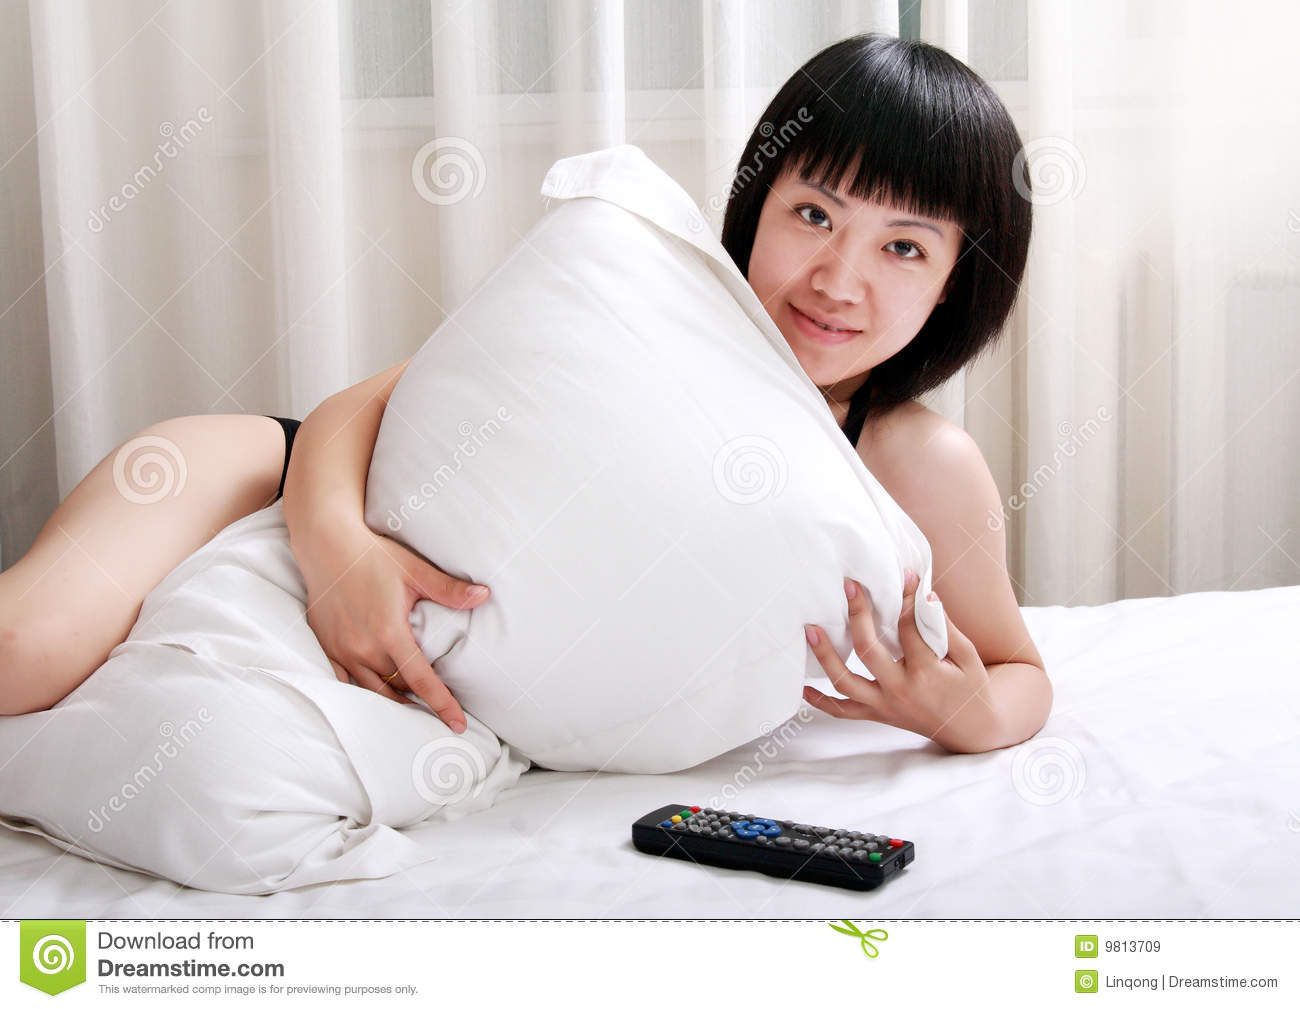 Asian Girls Lying On Bed Stock Image Image Of Control - 9813709-3258